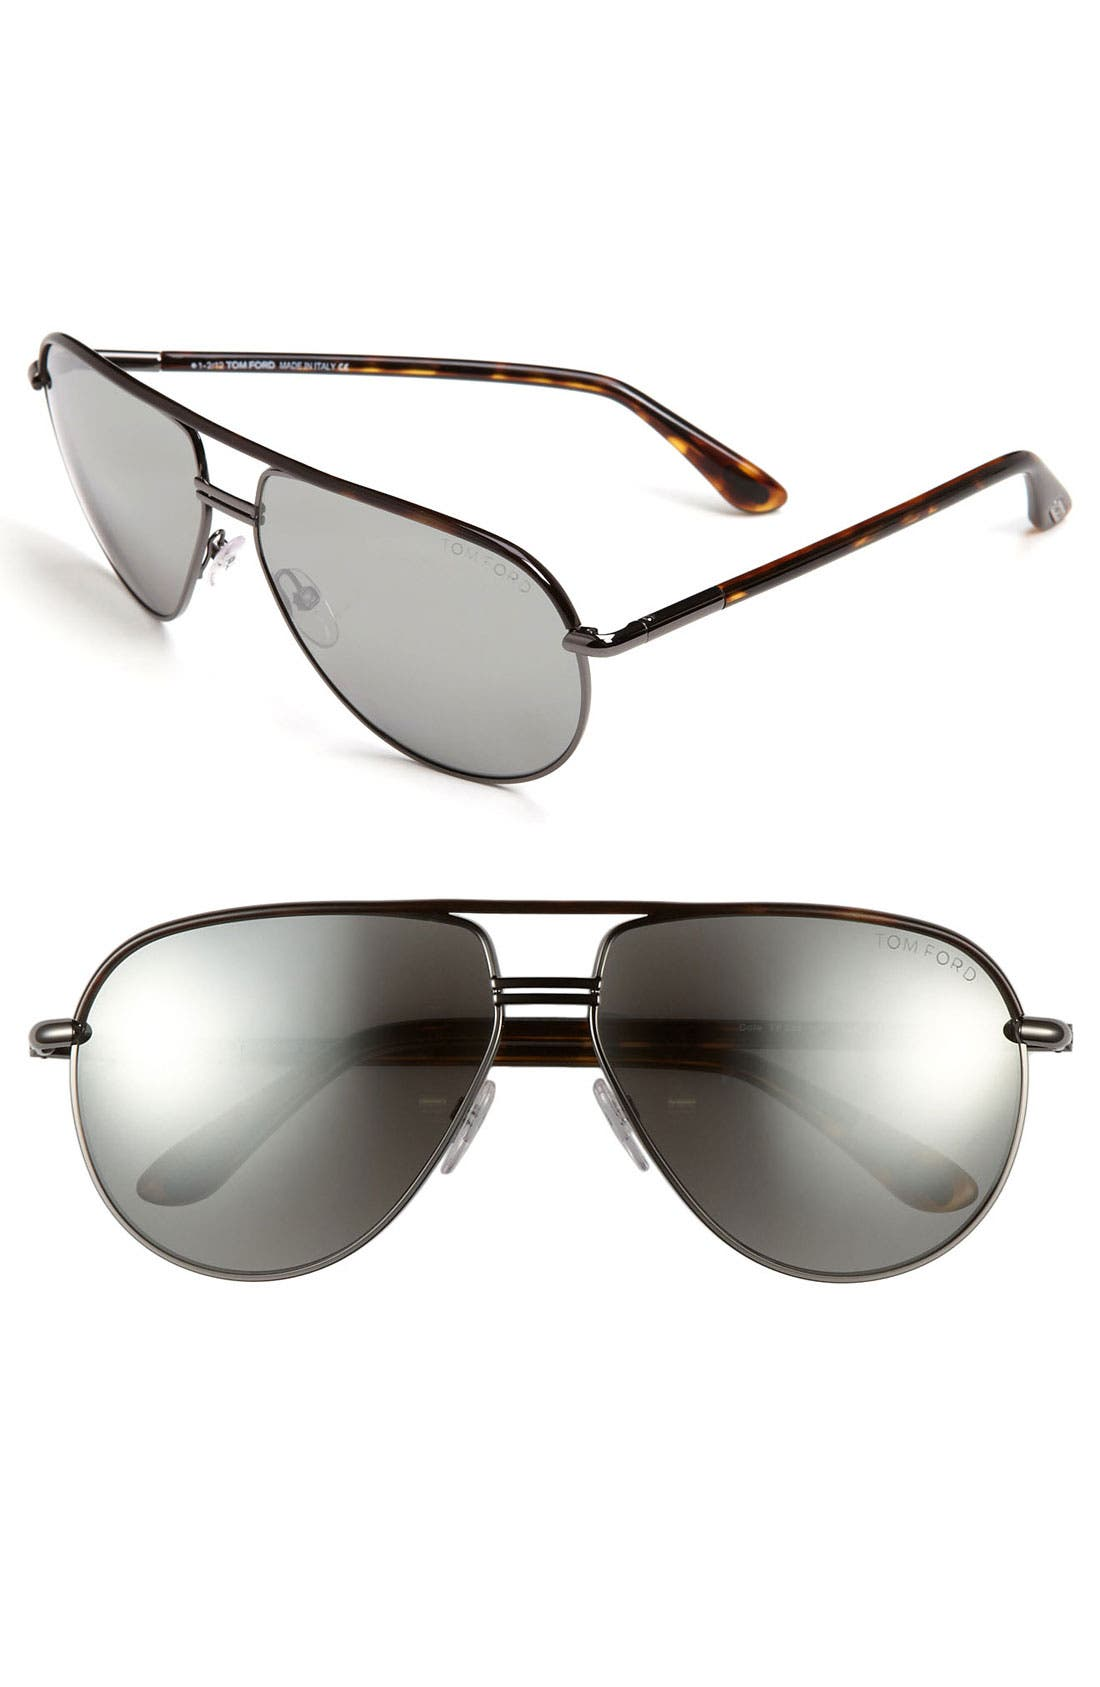 Alternate Image 1 Selected - Tom Ford 'Cole' 61mm Sunglasses